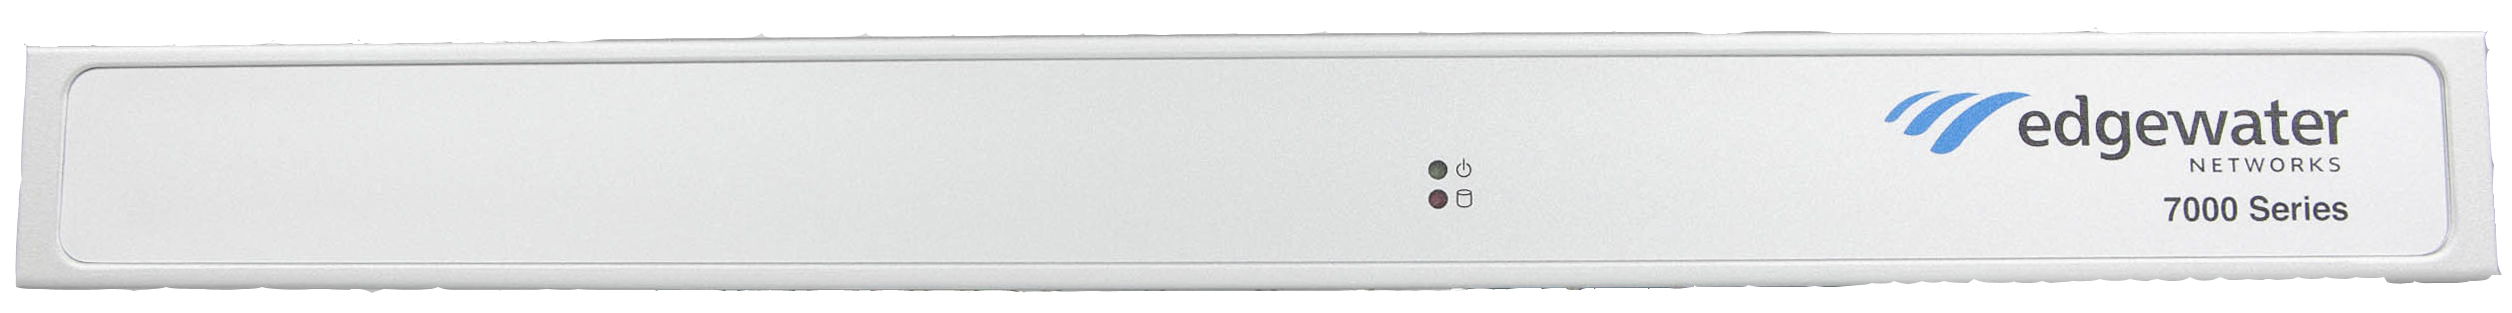 EdgeProtect 7000 Series (Photo: Business Wire)